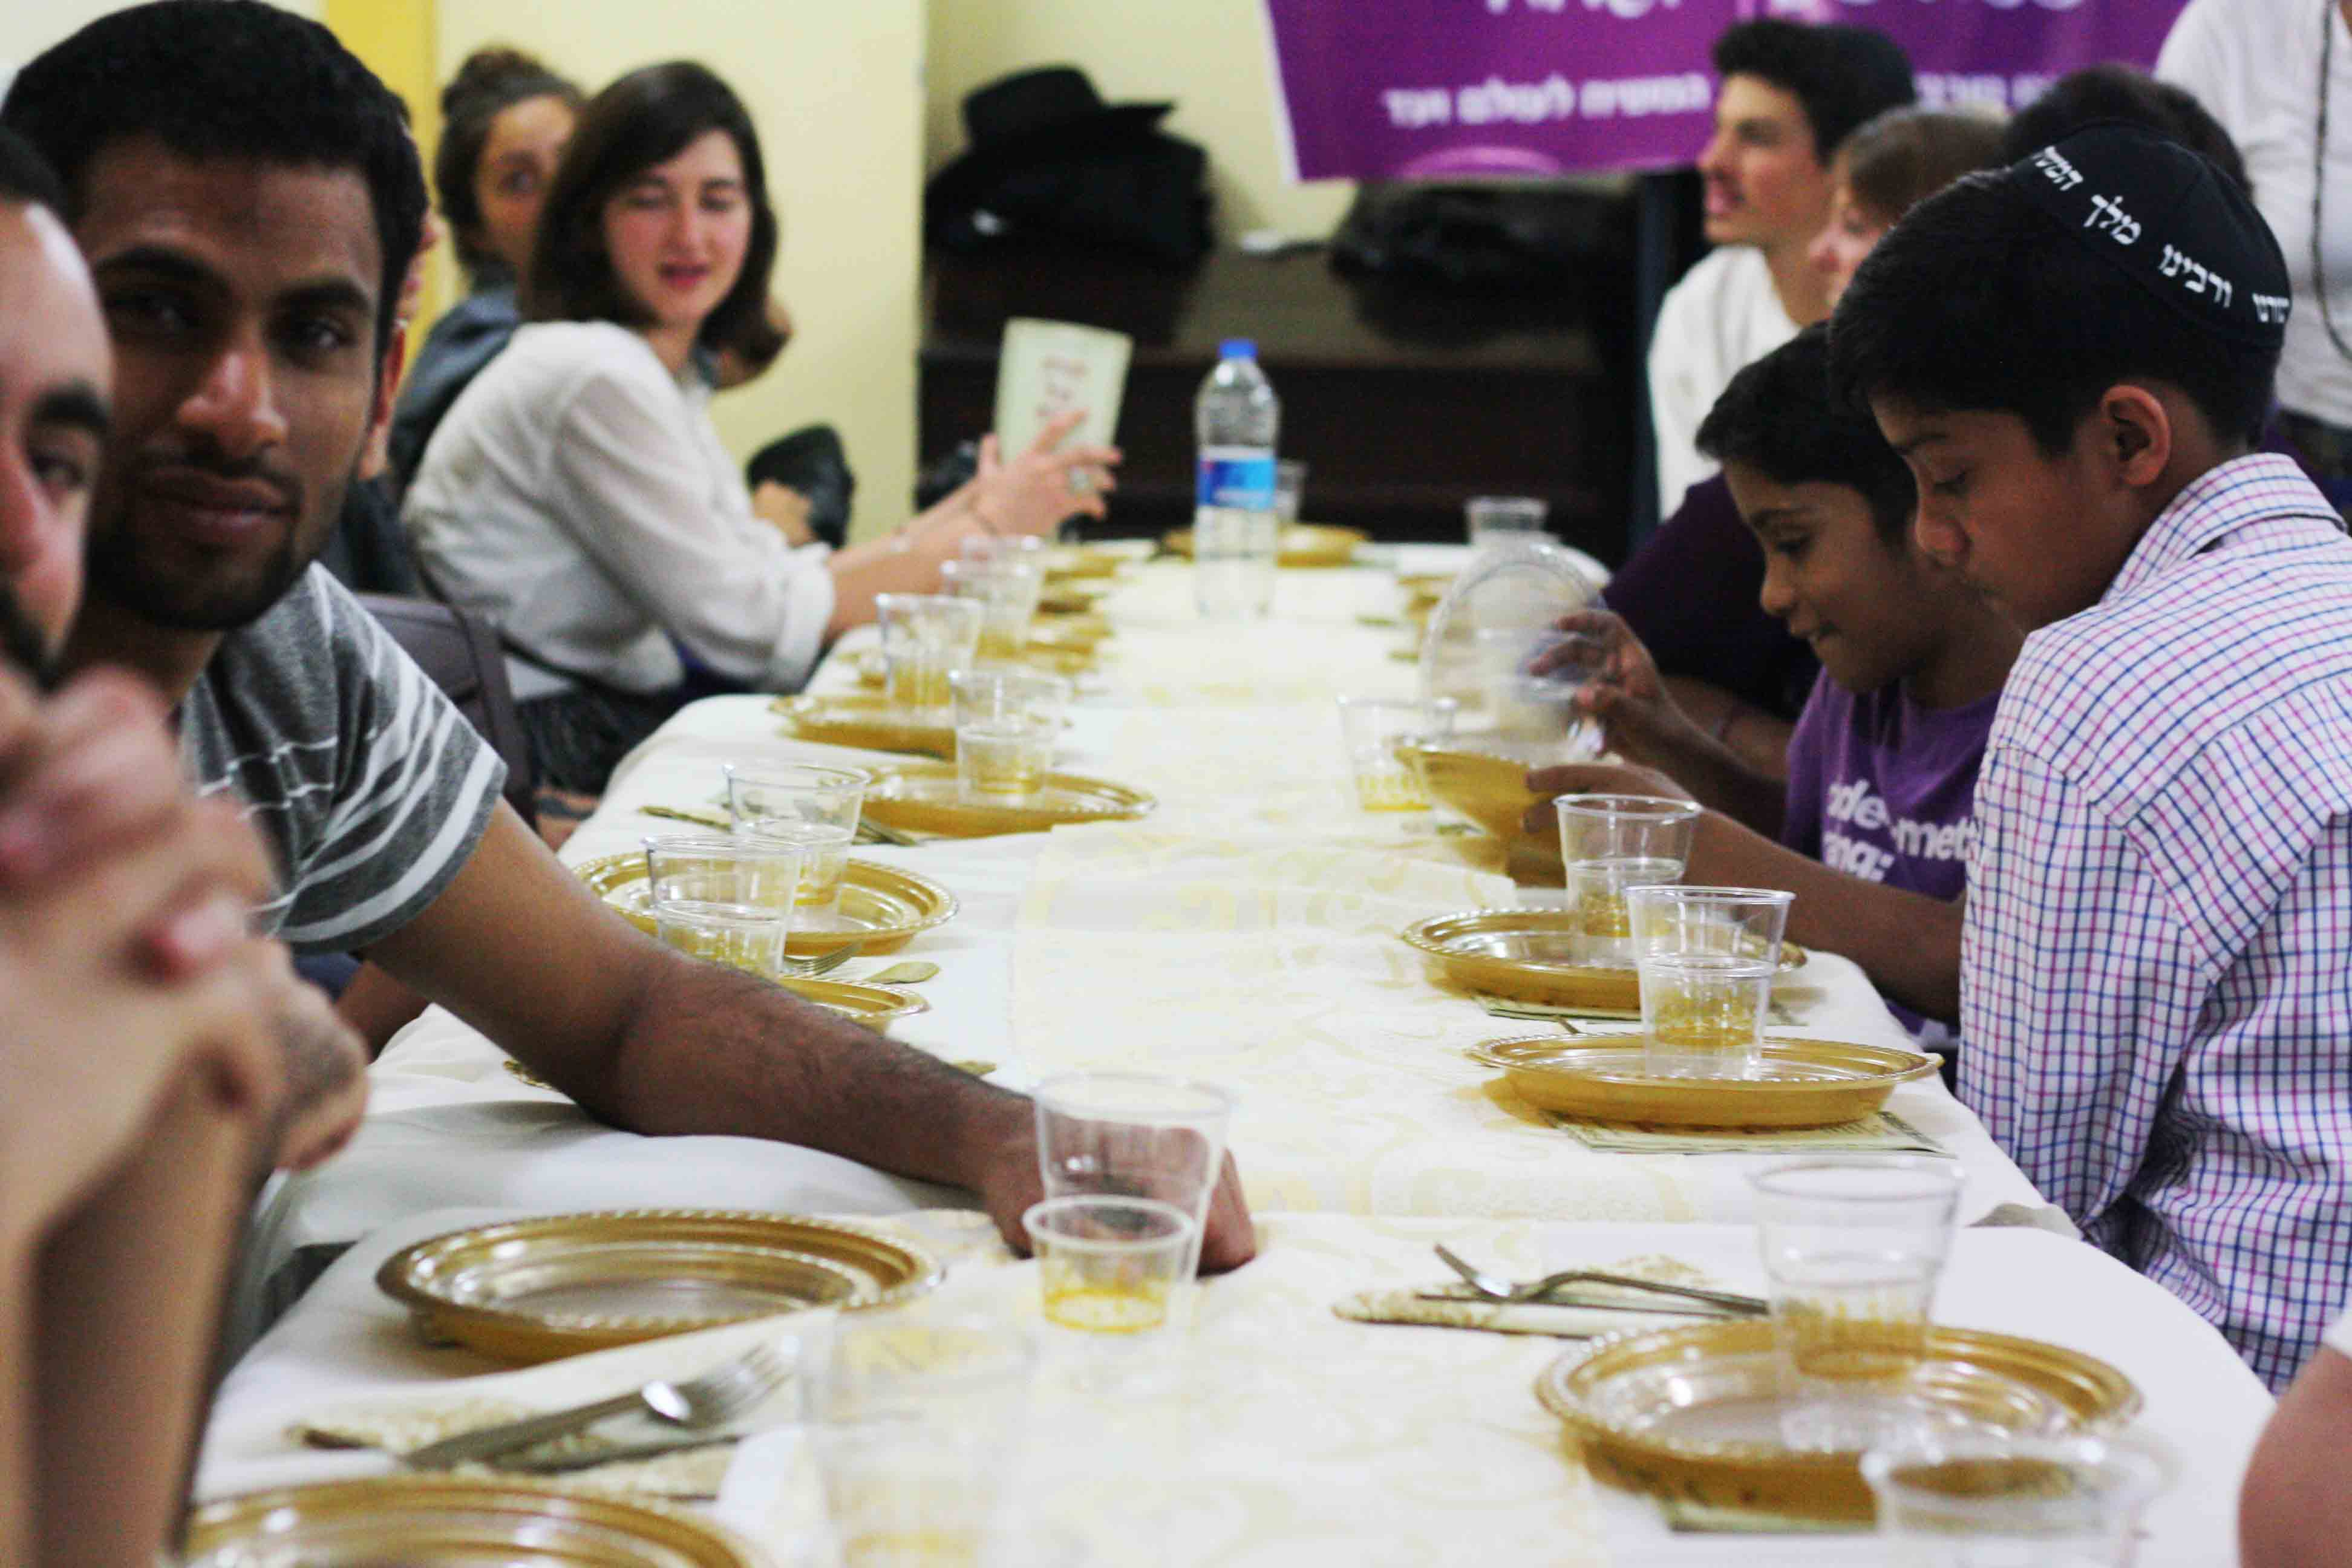 City Faith - Passover Meal, Chabad House